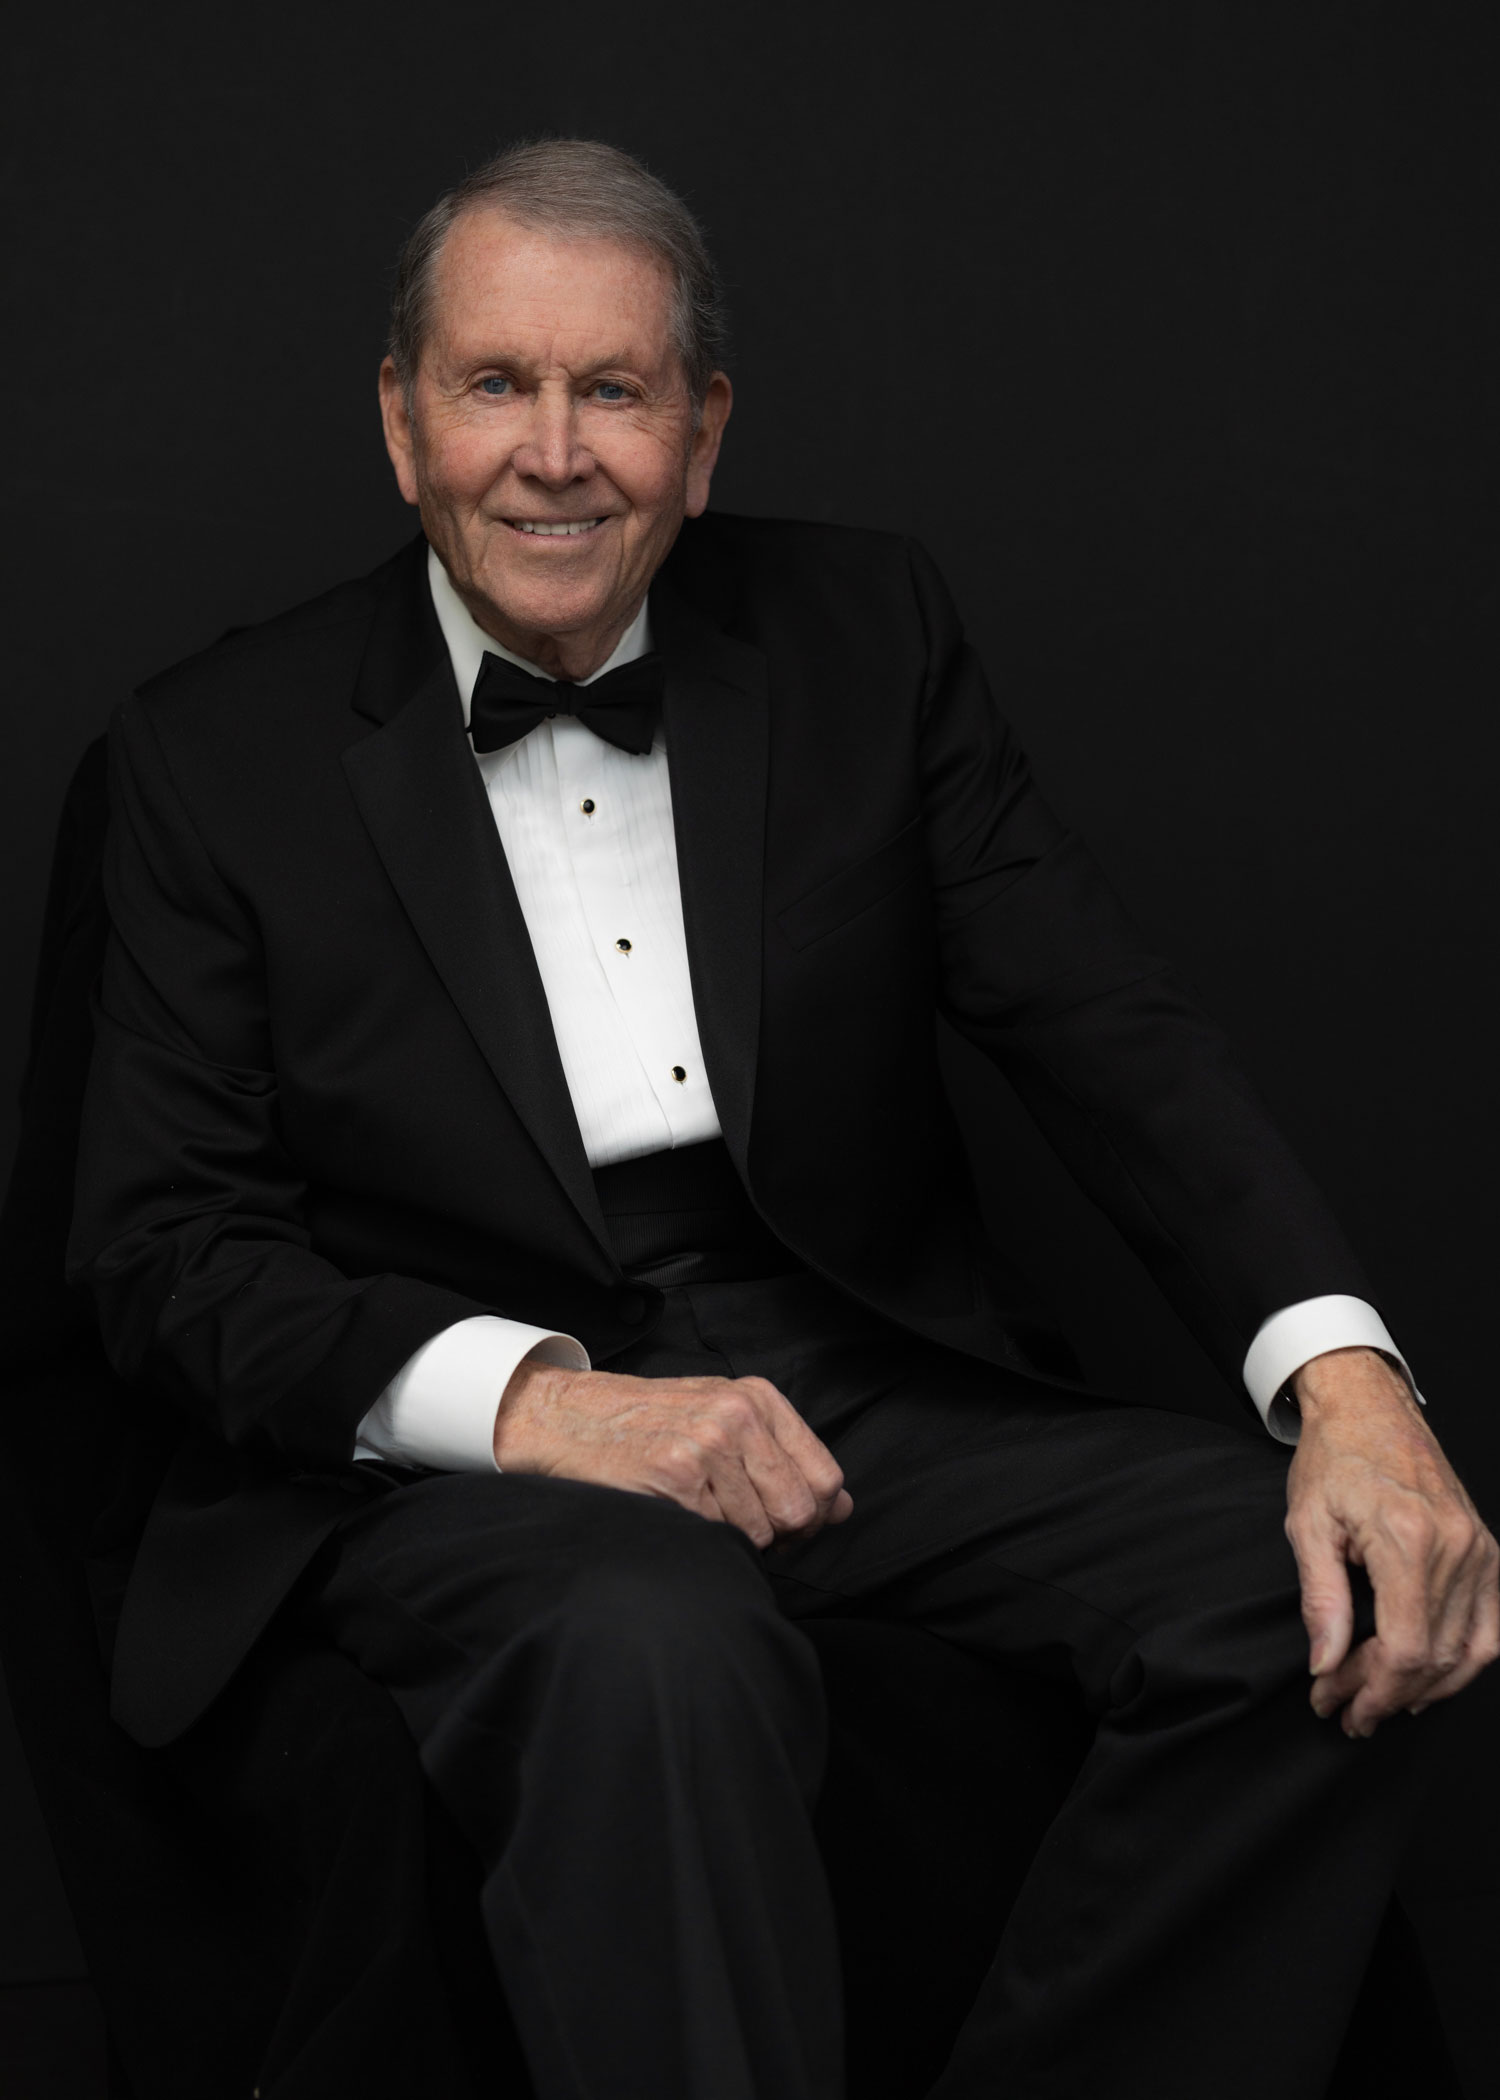 Handsome older gentleman smiling and seated  formal attire.